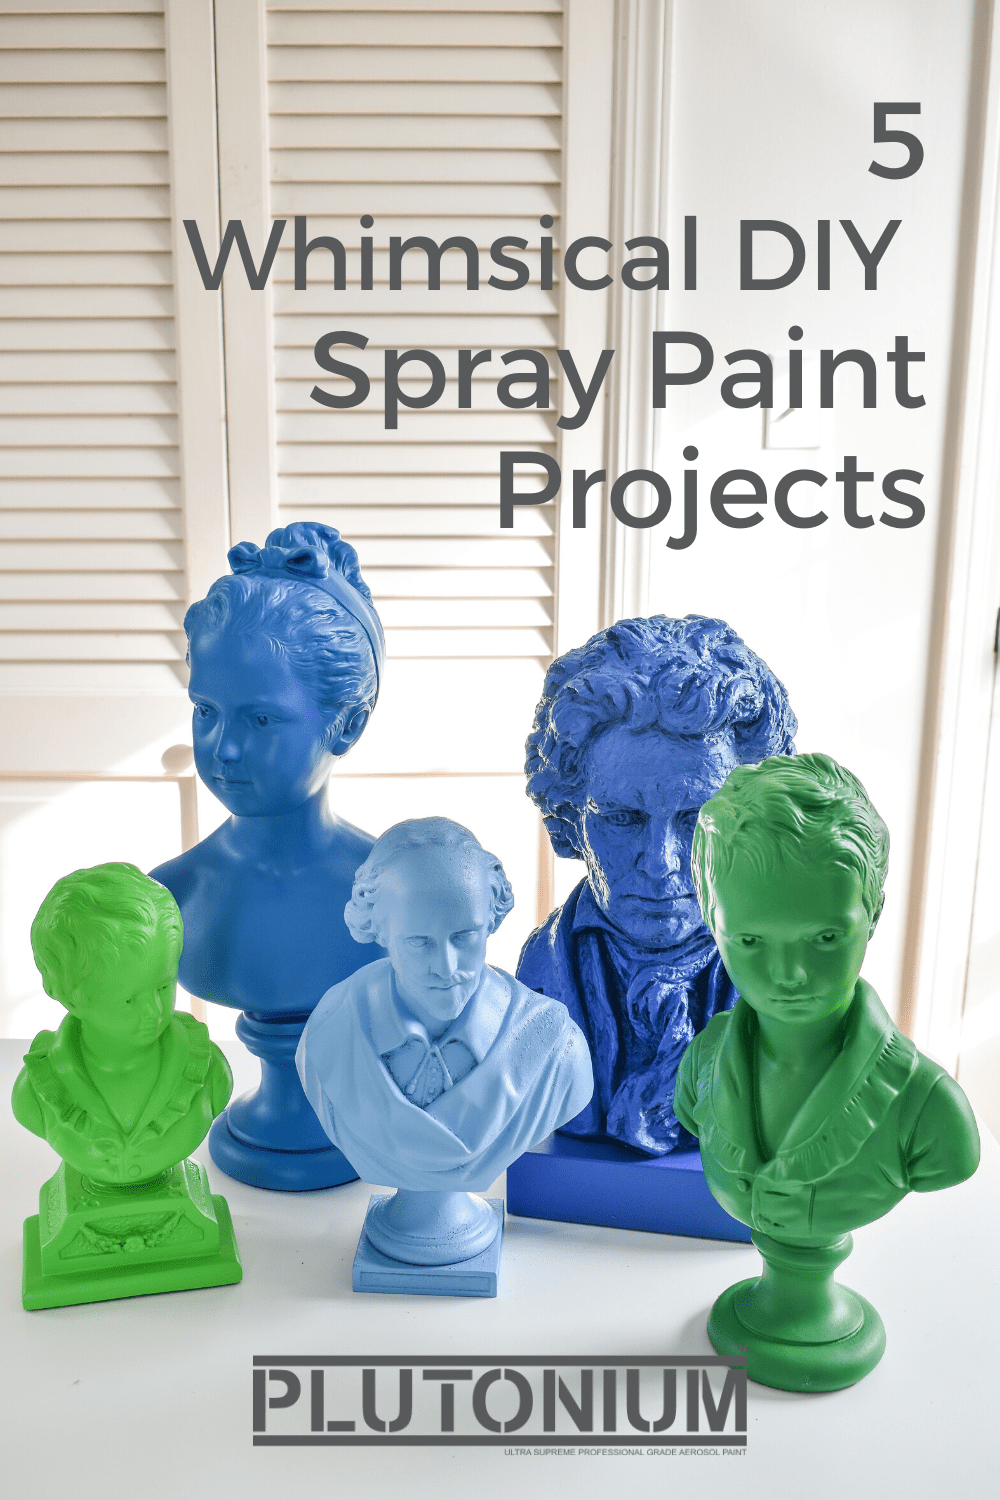 Want a little inspiration on what to create? Take a look at these awesome and whimsical DIY spray paint projects created by some of our favorite DIY bloggers. These are inexpensive DIY and easy spray paint projects. Get step-by-step instructions on these spray paint crafts and spray paint projects, most of them use thrift store finds! #plutoniumpaint #spraypaintcraft #spraypaintprojects #thriftstorediy